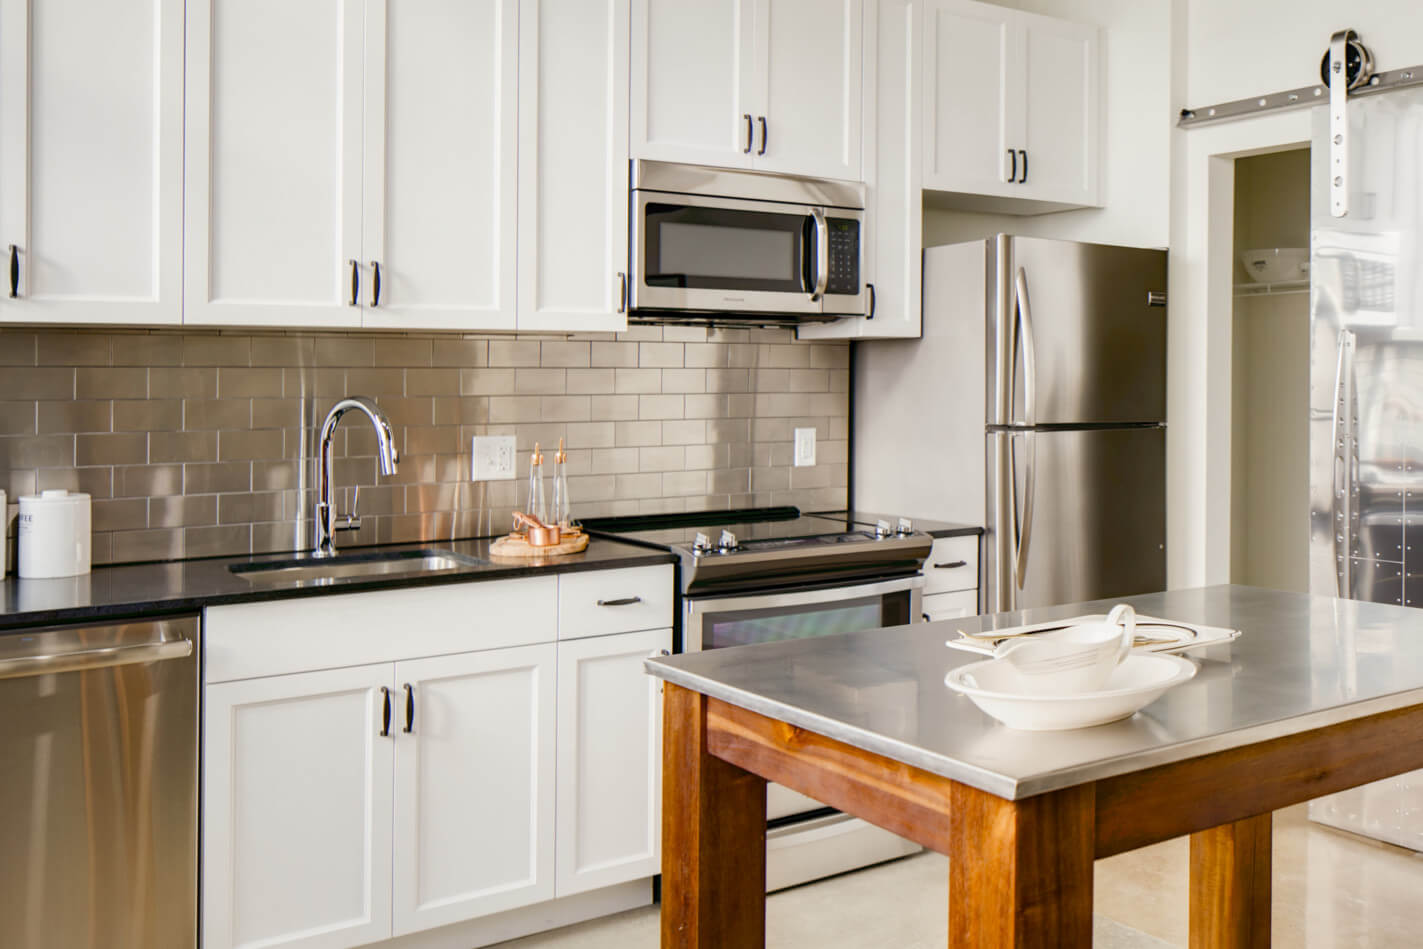 Merveilleux Best Apartment Kitchens In DC | Hecht Warehouse Apartments In Ivy City |  Washington DC Apartments